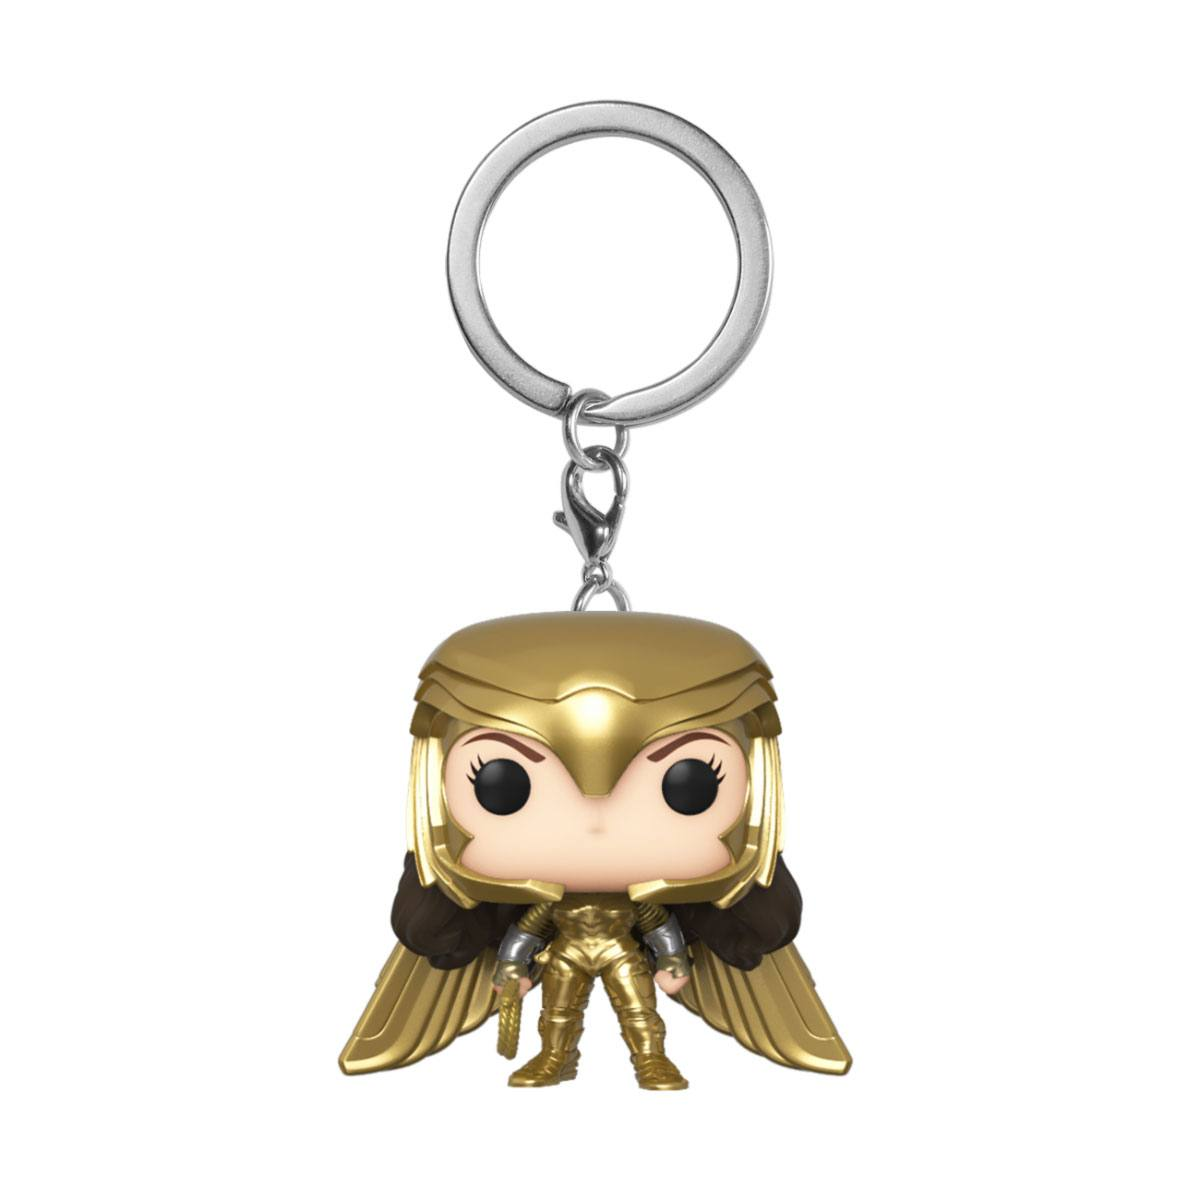 Wonder Woman 1984 POP! - vinylová kľúčenka Wonder Woman (Gold Wing) 4 cm